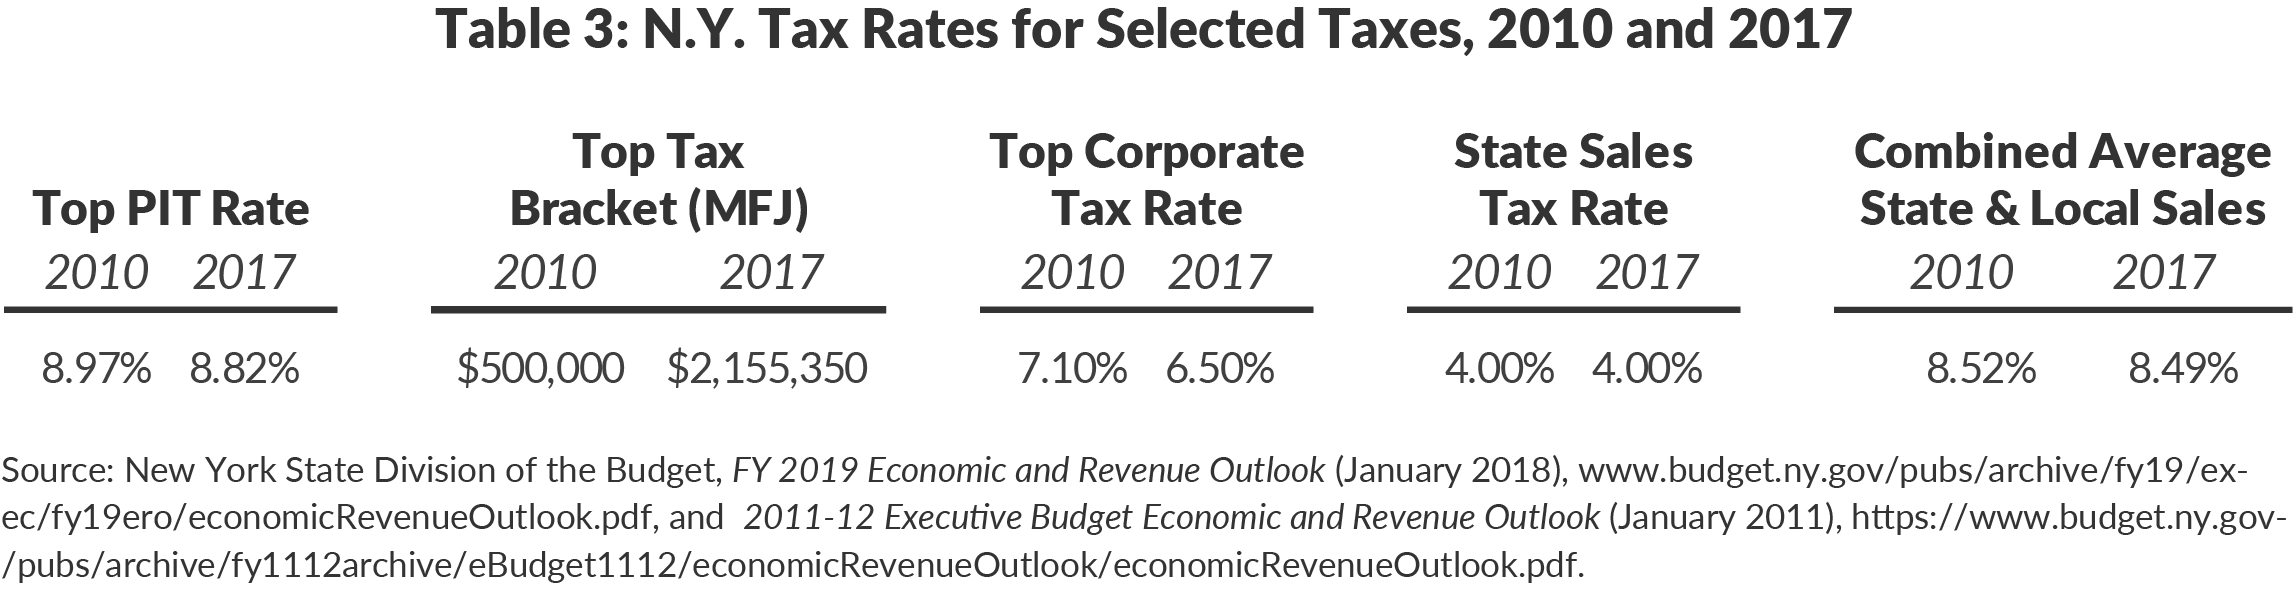 Table 3: N.Y. Tax Rates for Selected Taxes, 2010 and 2017